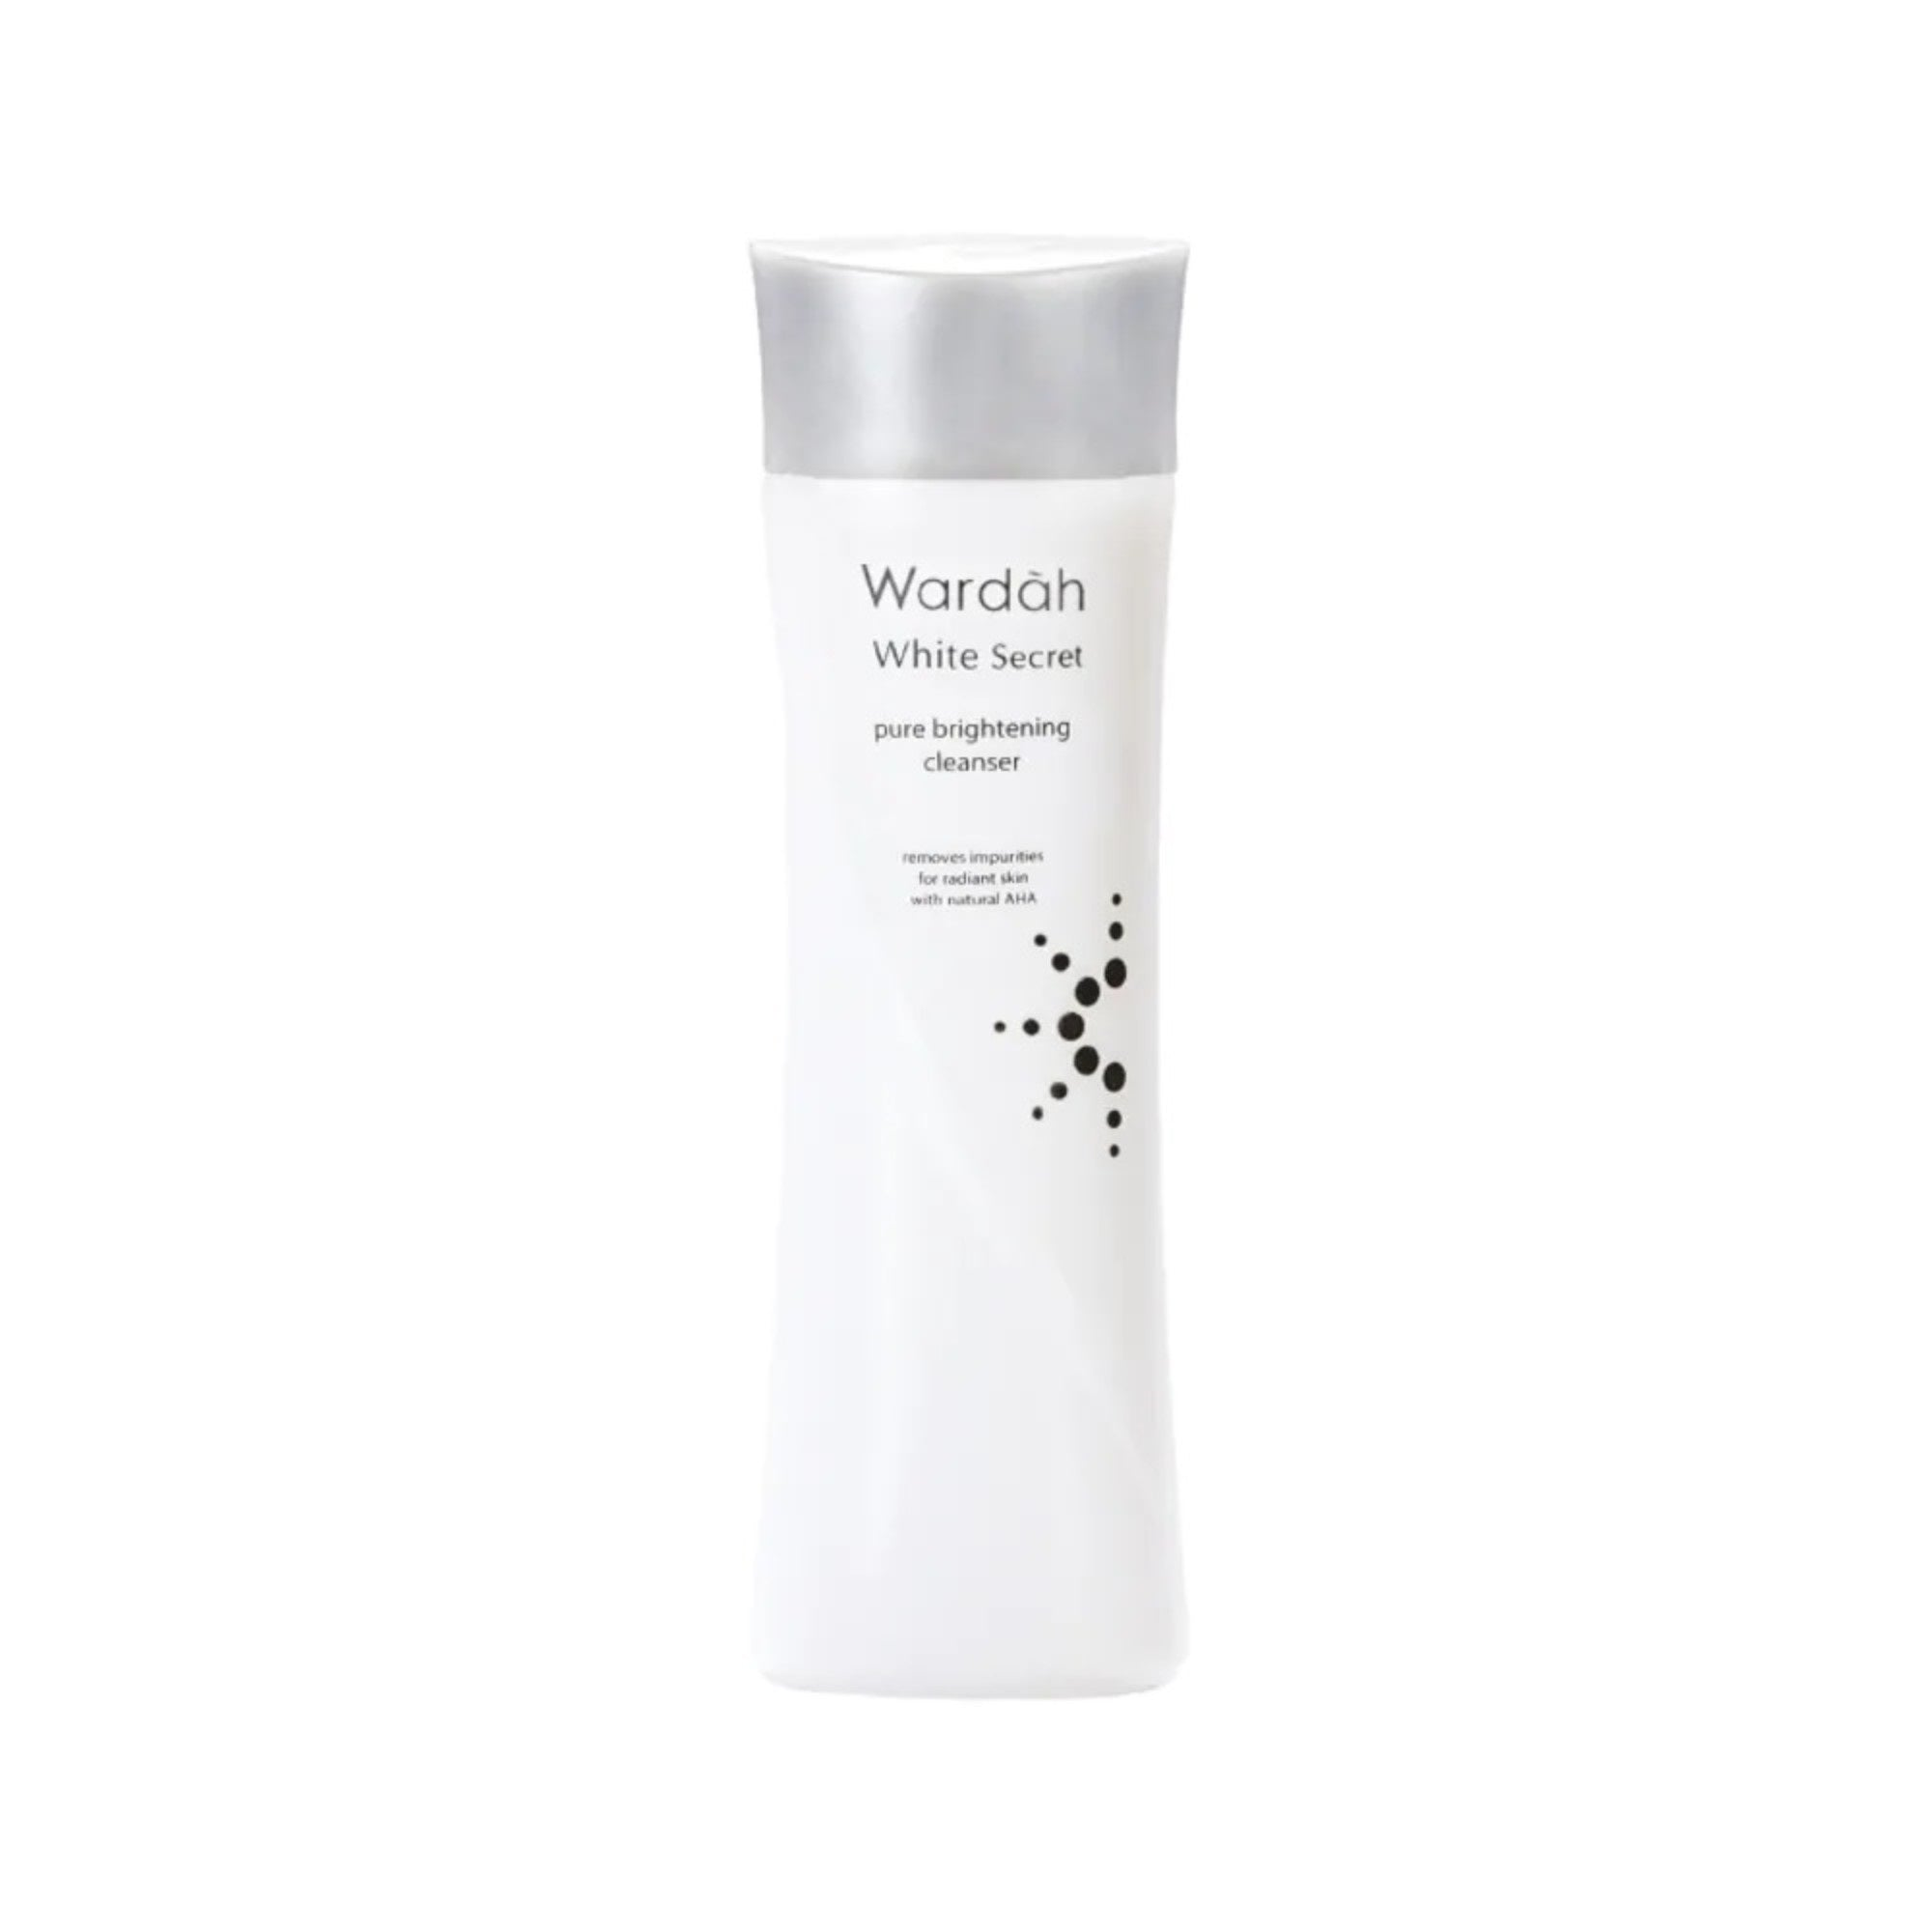 Wardah White Secret Pure Brightening Cleanser 150ml